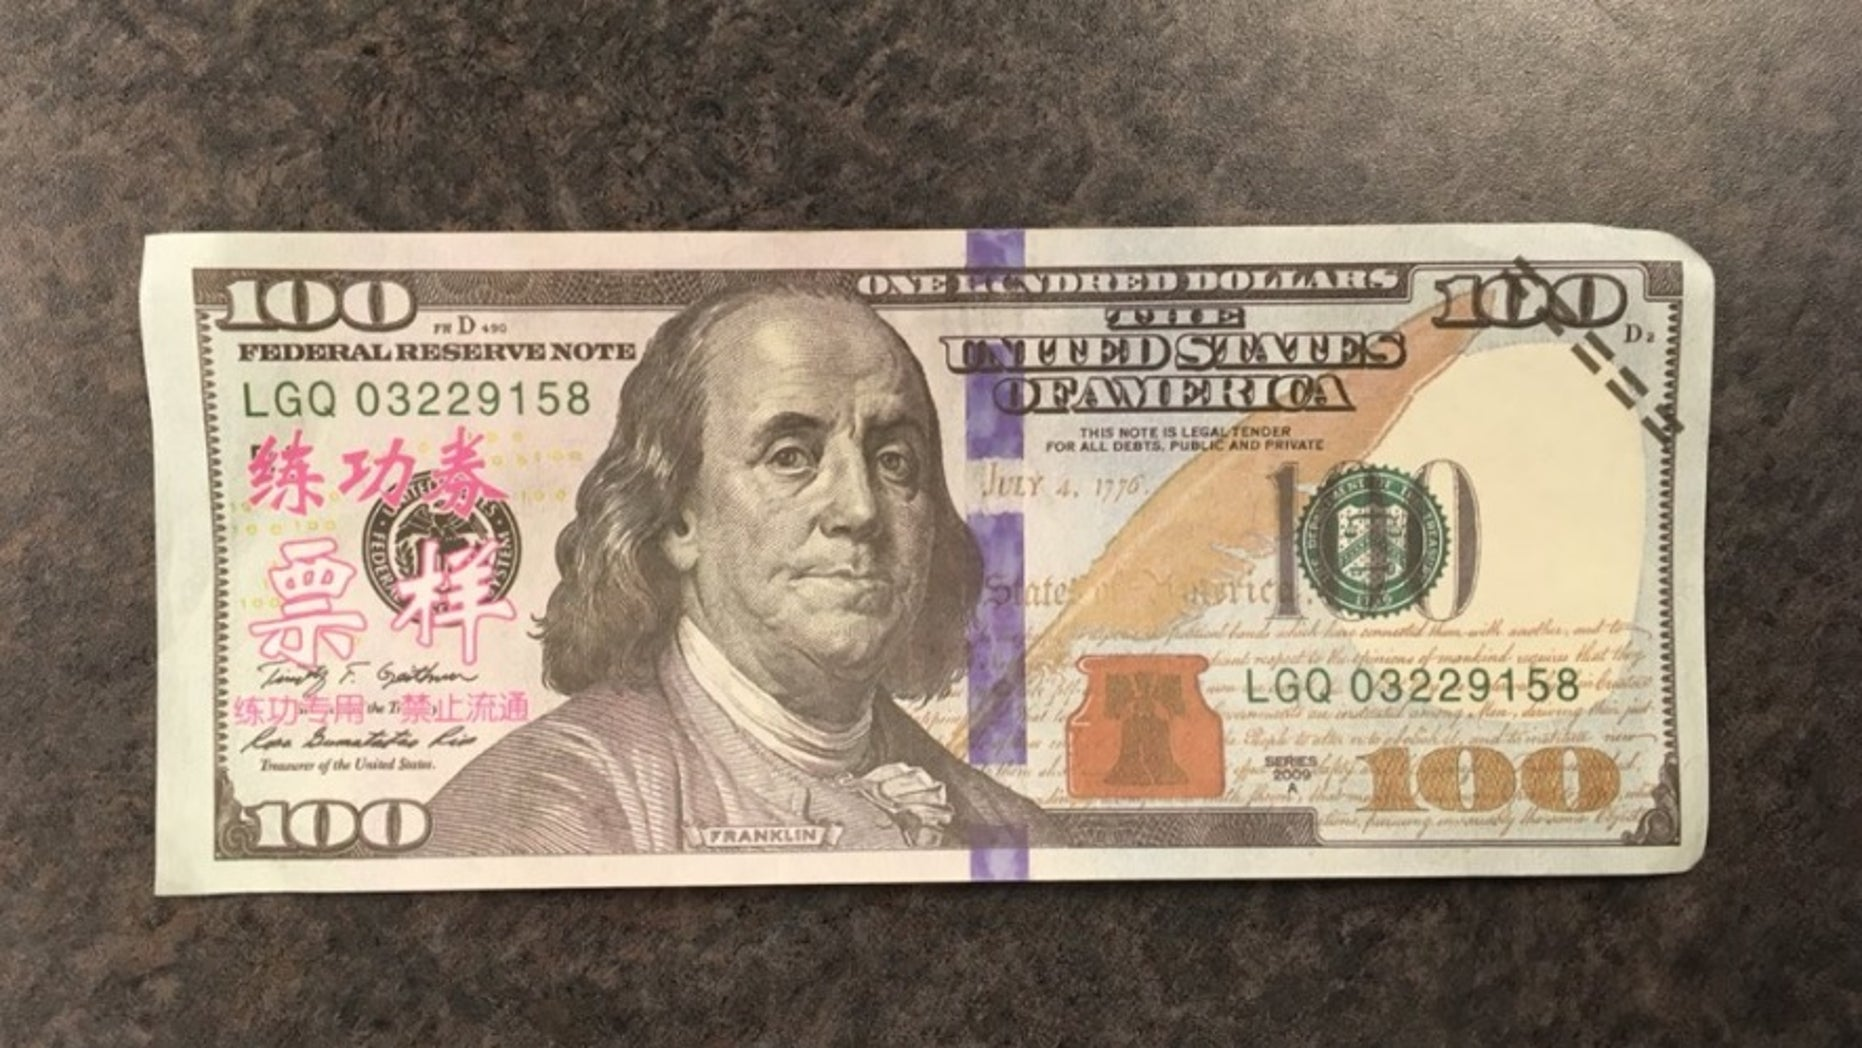 Is It Illegal To Write On or Deface Money? - nevblog.com